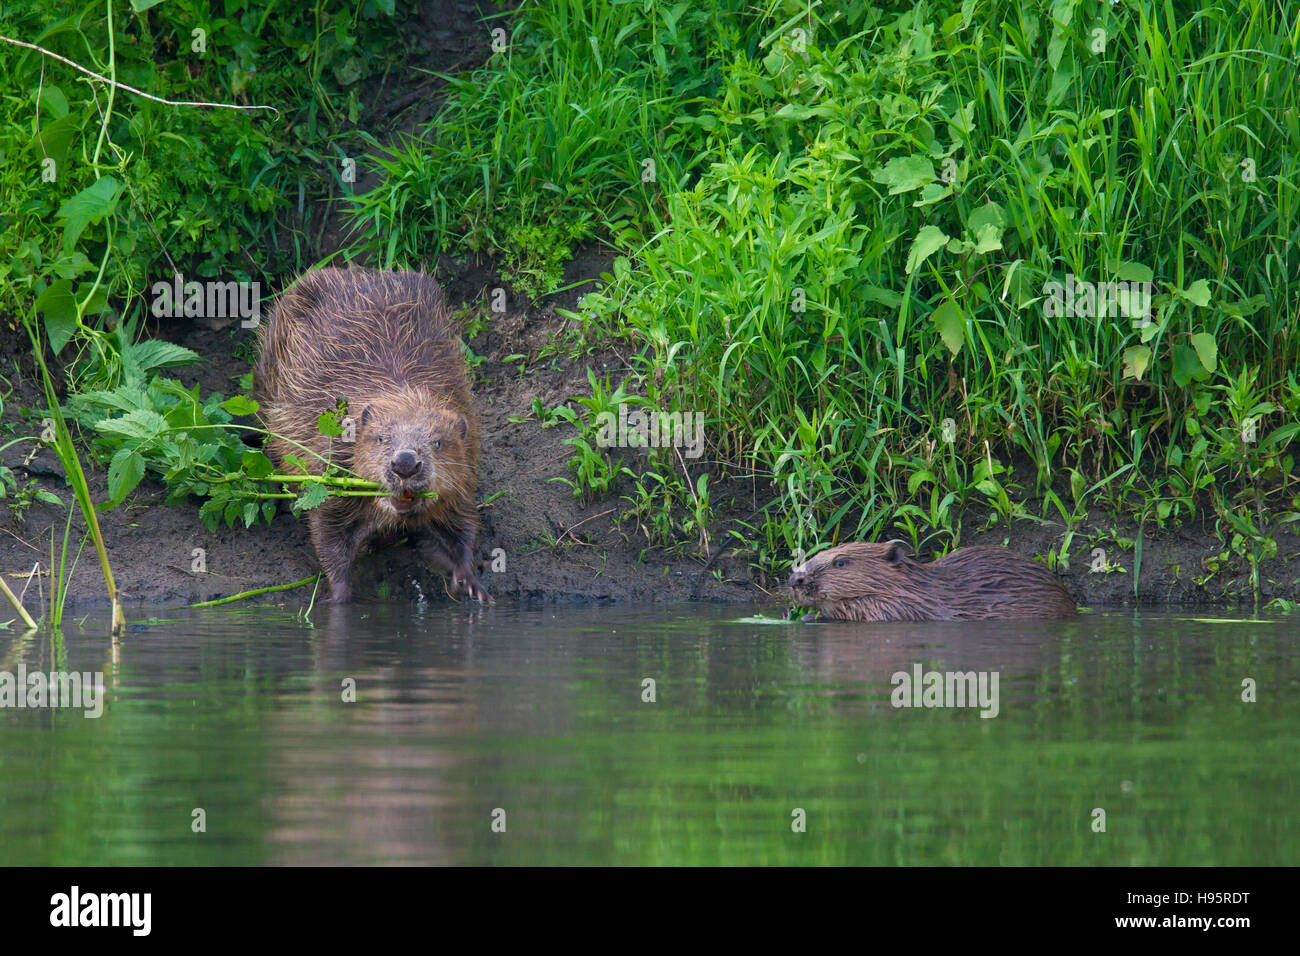 Eurasian beaver / European beaver (Castor fiber) with young on lake shore collecting vegetation for food cache - Stock Image